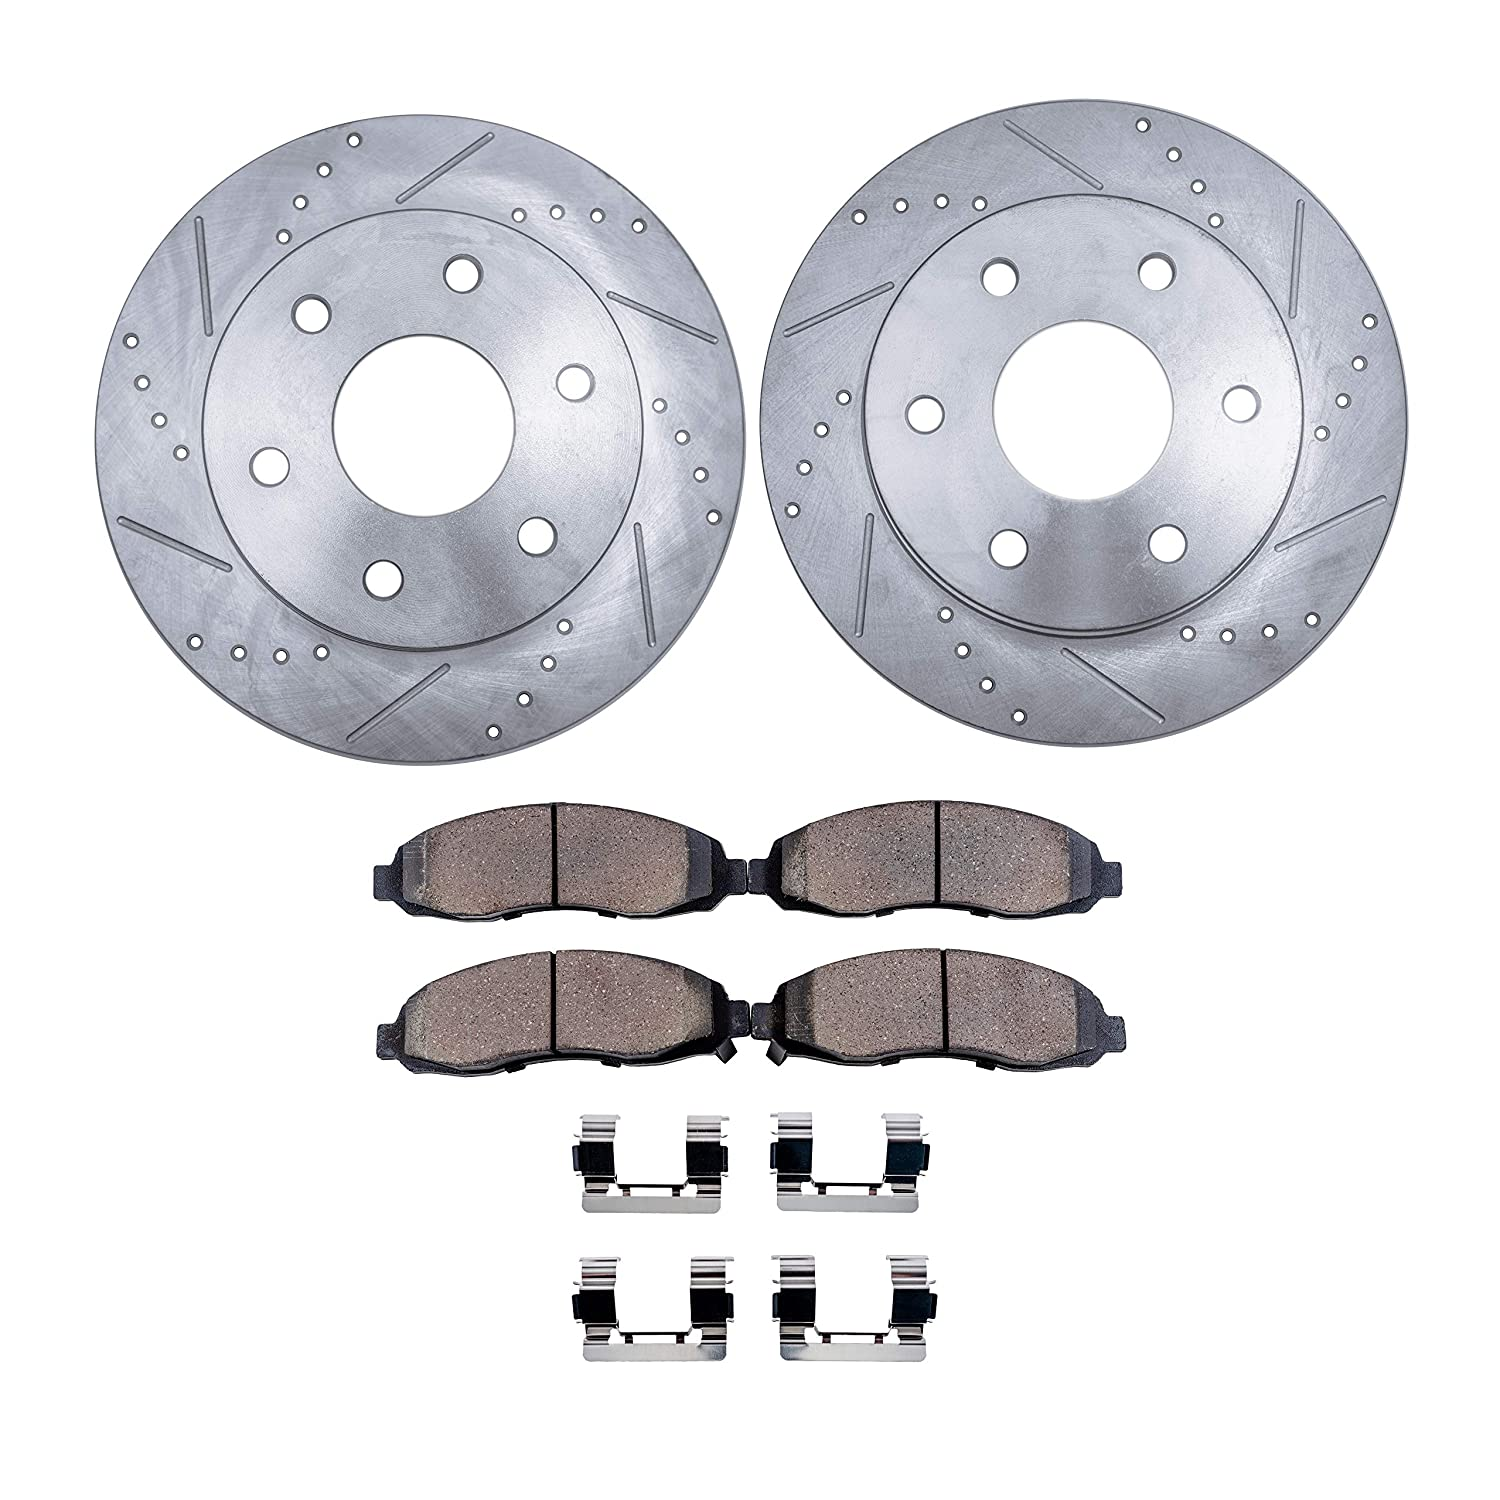 Detroit Axle - Drilled & Slotted Front Brake Rotors & Ceramic Pads w/Clips Hardware Kit for 08-15 Escalade, EXT,ESV - [08-15 Sierra/Silverado 1500] - [08-15 Suburban, Yukon, Avalanche]